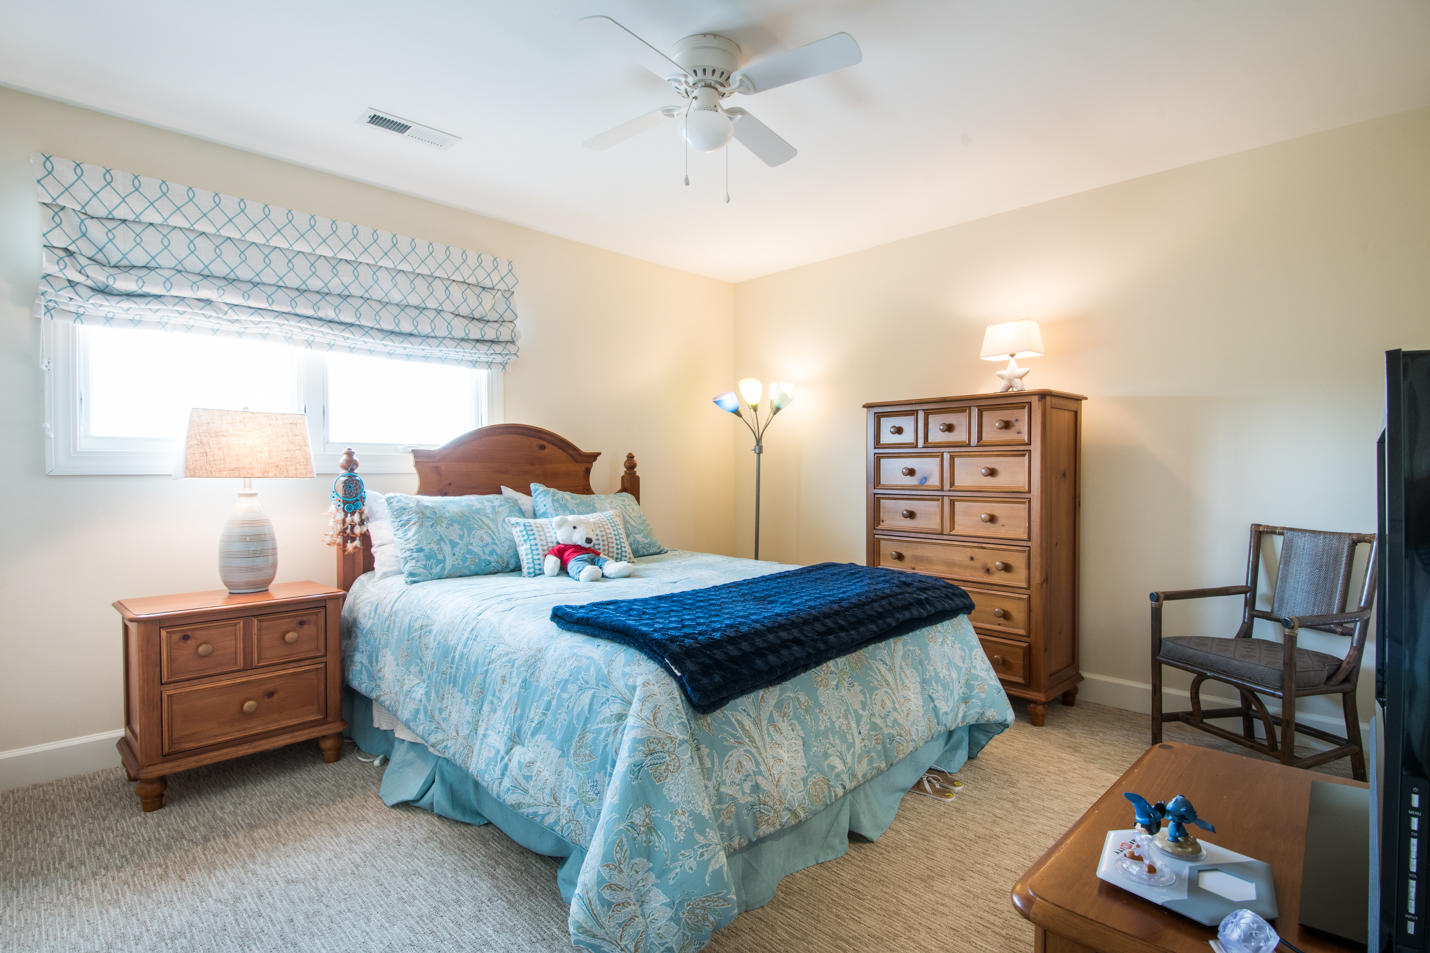 Beach Club Villas Homes For Sale - 66 Beach Club Villas, Isle of Palms, SC - 47